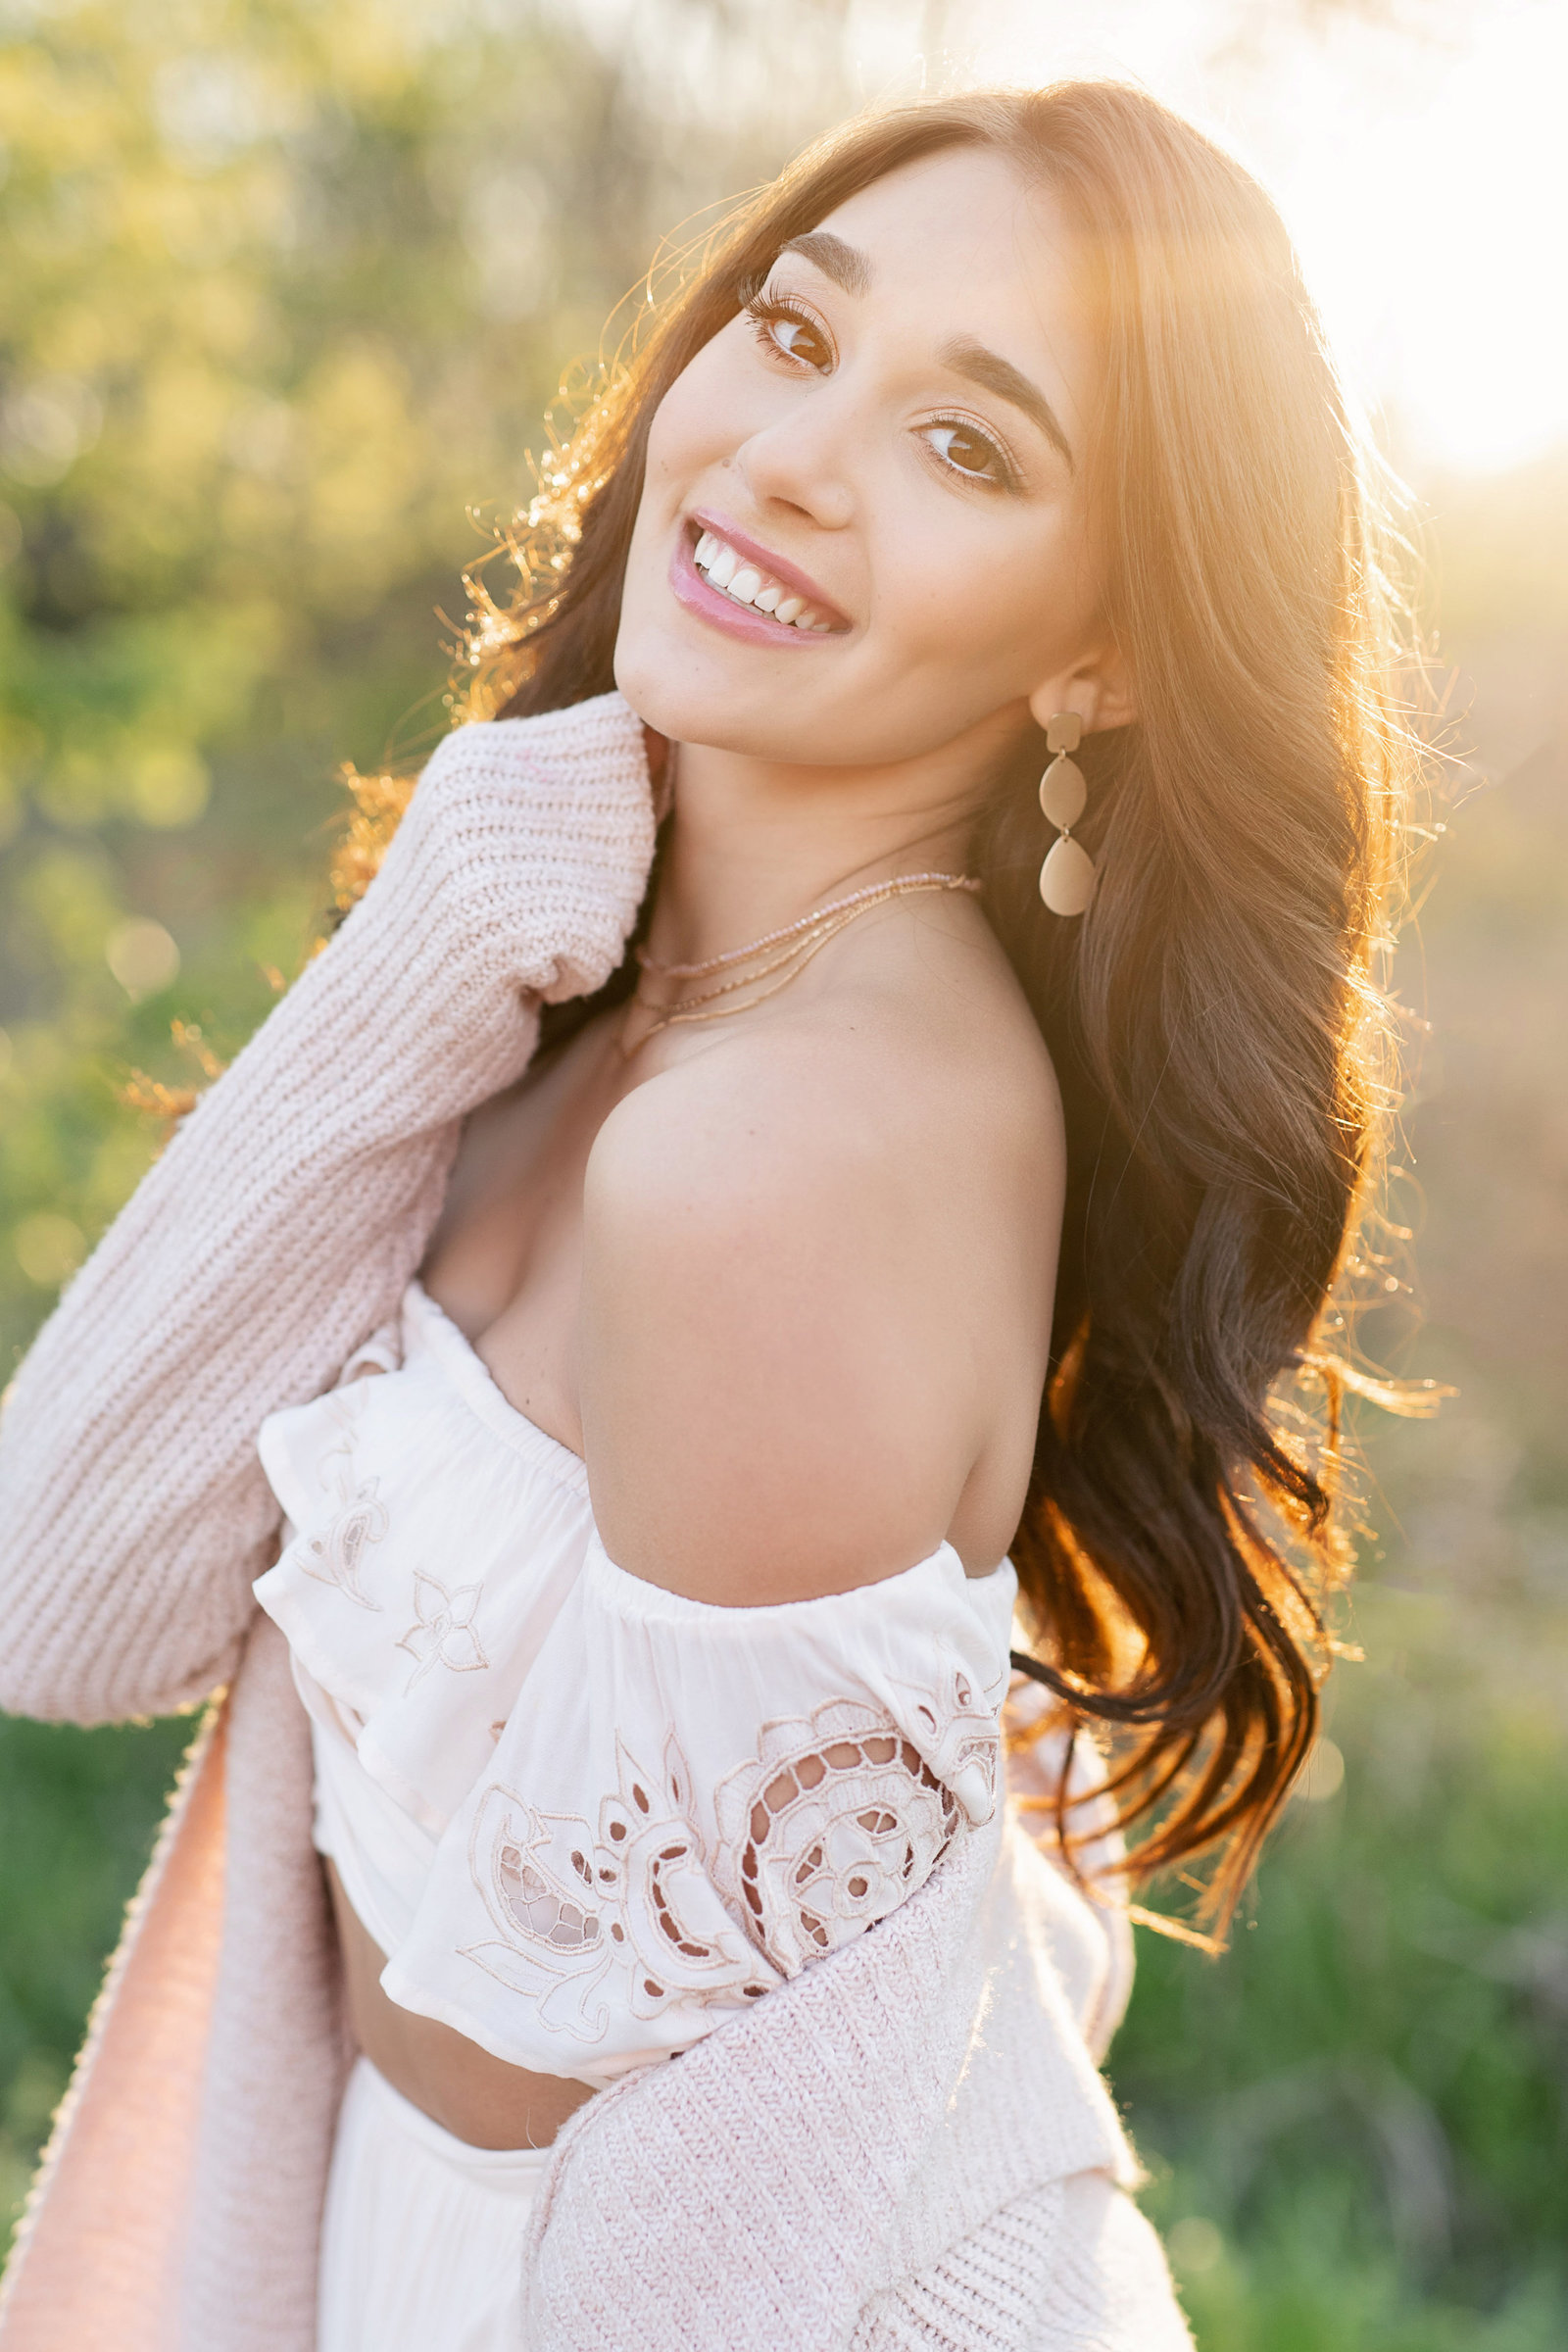 Cindy Swanson Photography Senior portrait photographer in Dallas Texas21